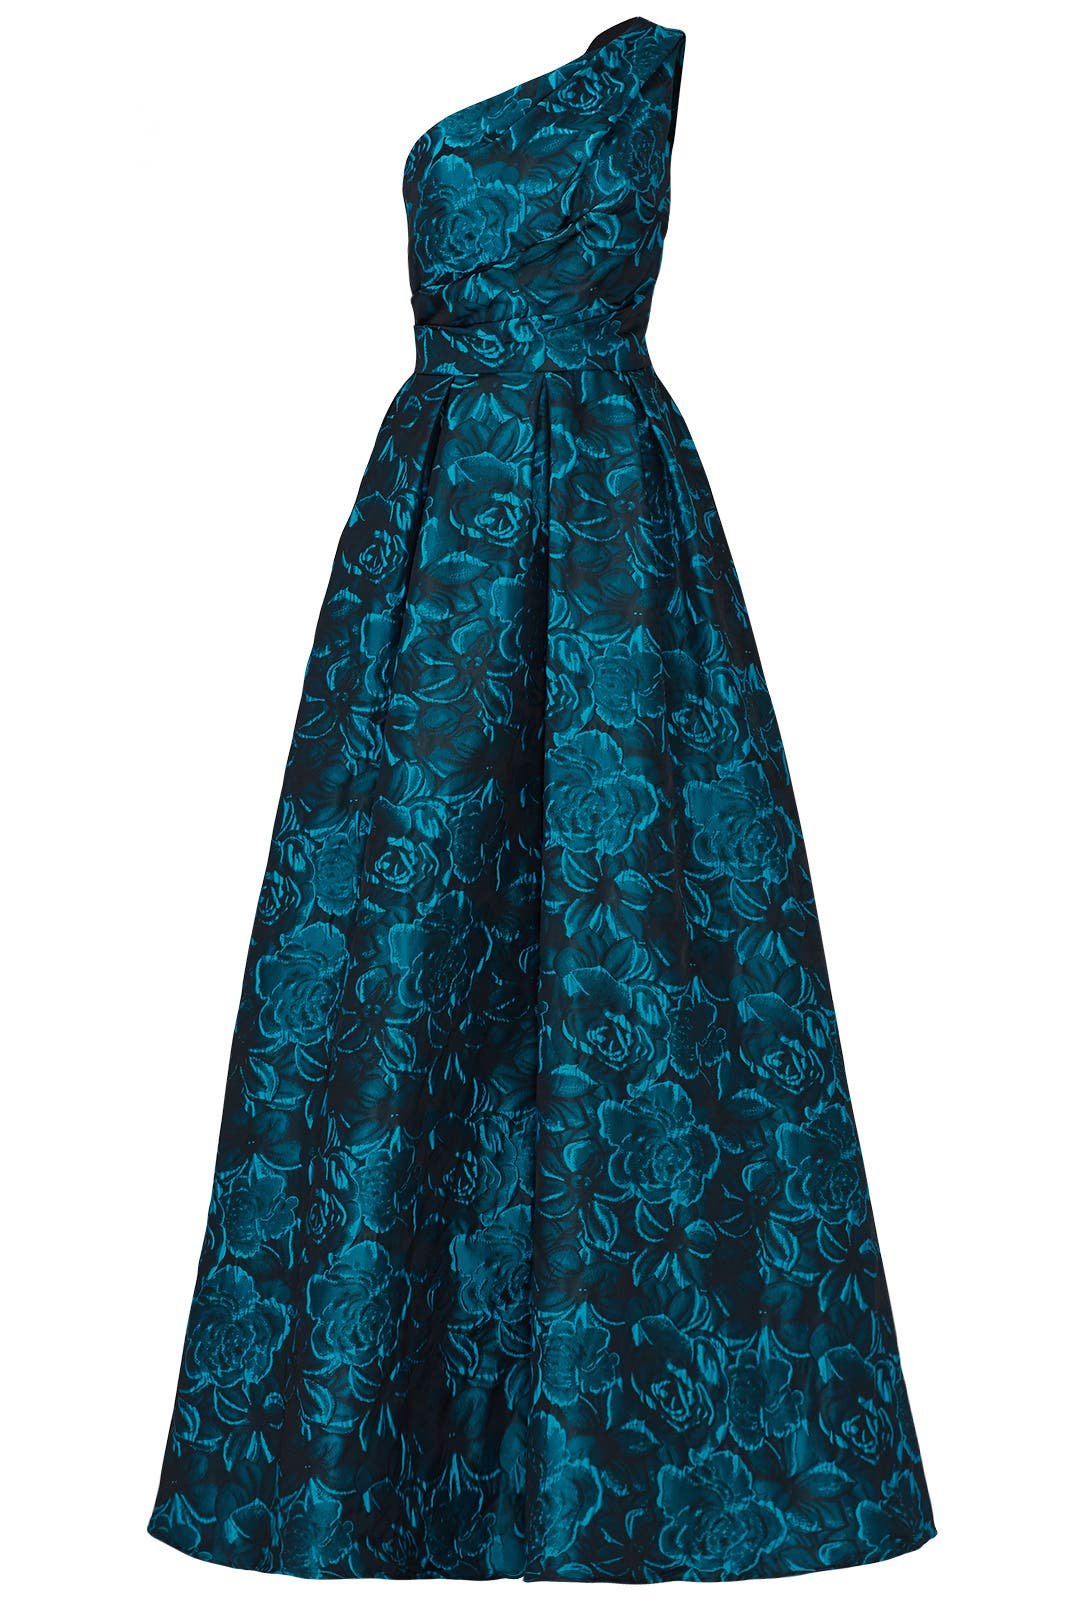 Blue Simonetta Gown by Slate & Willow for $70   Rent the Runway